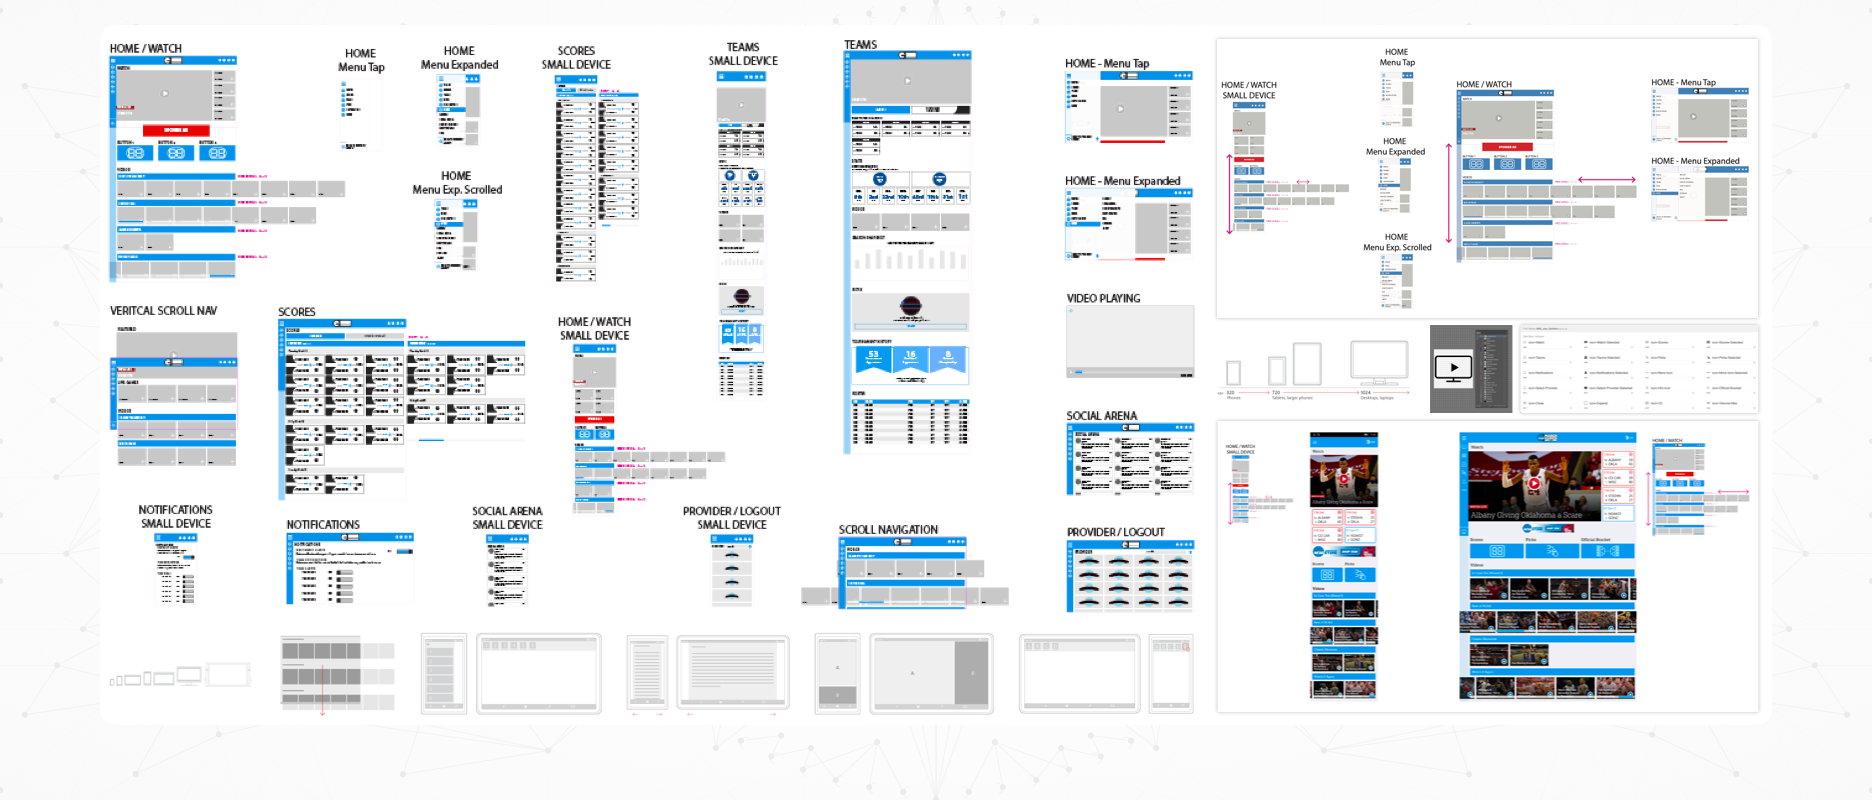 March Madness Live- Case Study Image - Experience and Development Guidance